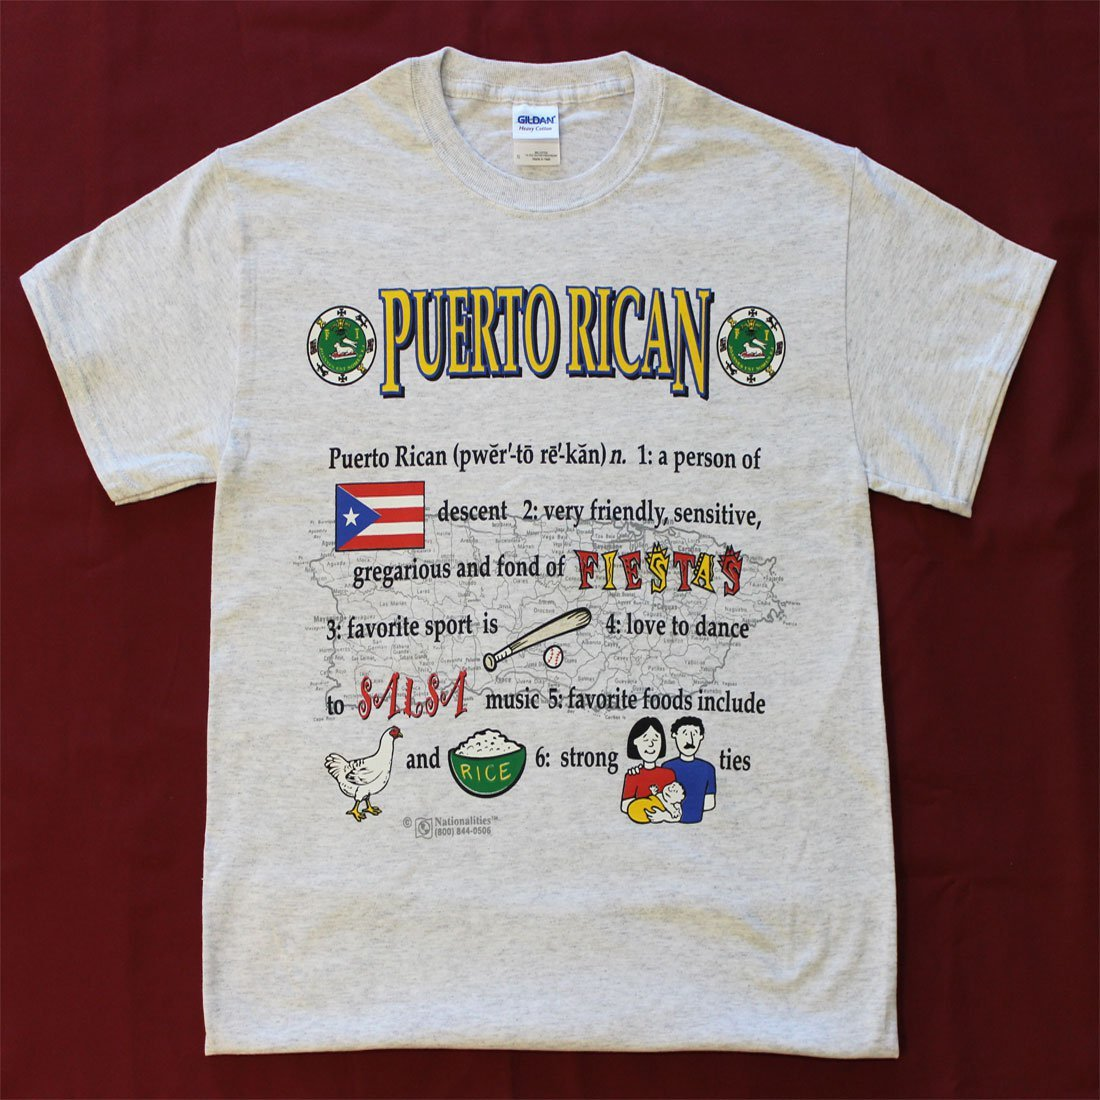 Puerto Rico Definition T-Shirt (S)